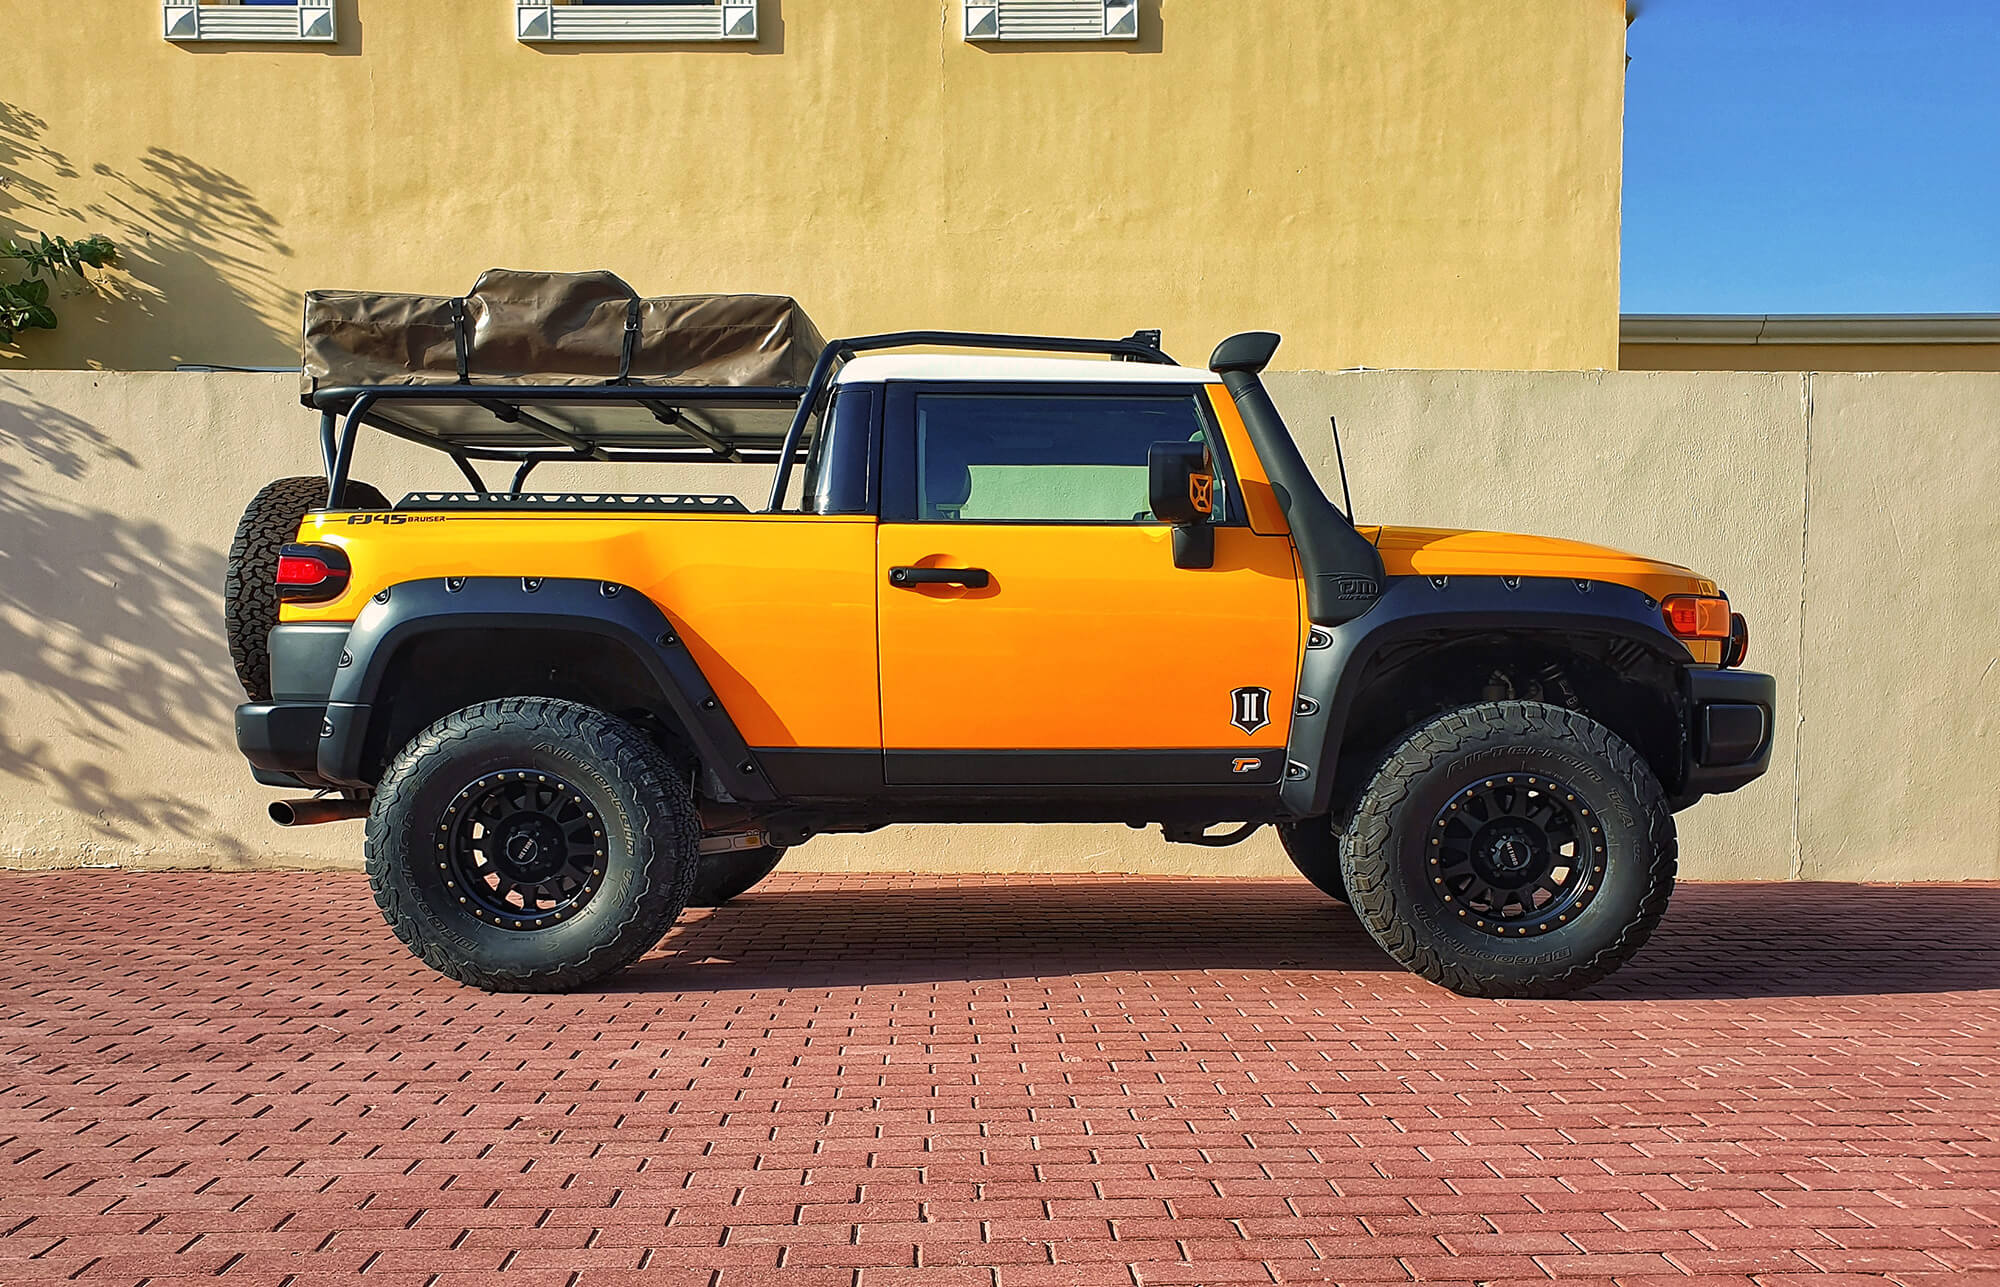 Lifted Toyota FJ Cruiser pickup truck conversion